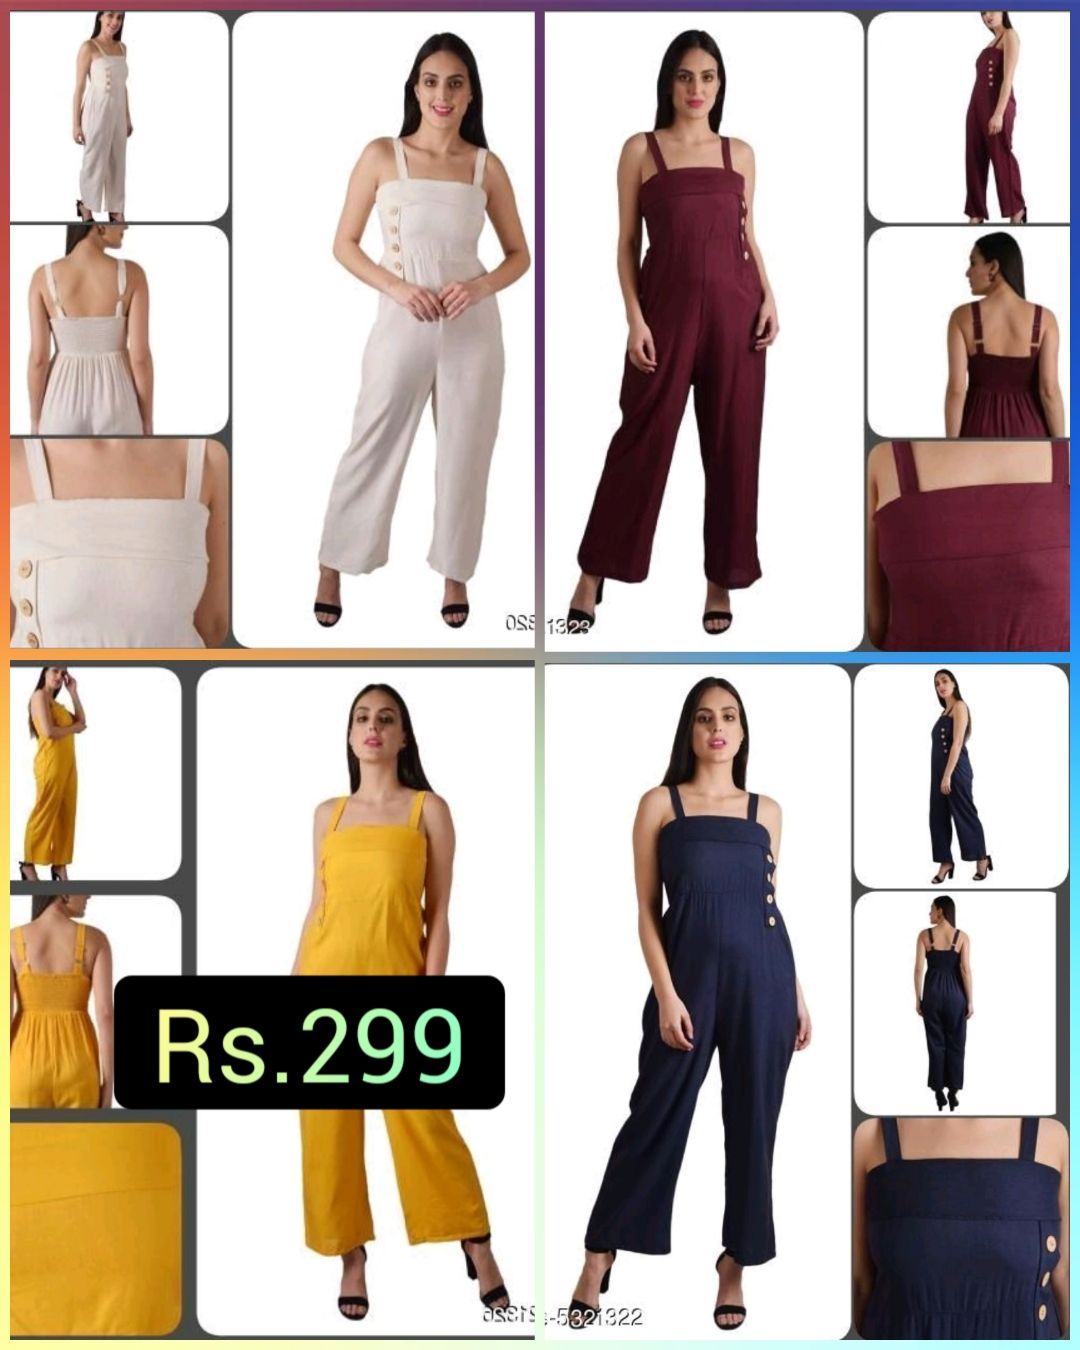 🛍️ Shop - OS & 1328 Rs . 299 assis : - 532 322 - ShareChat